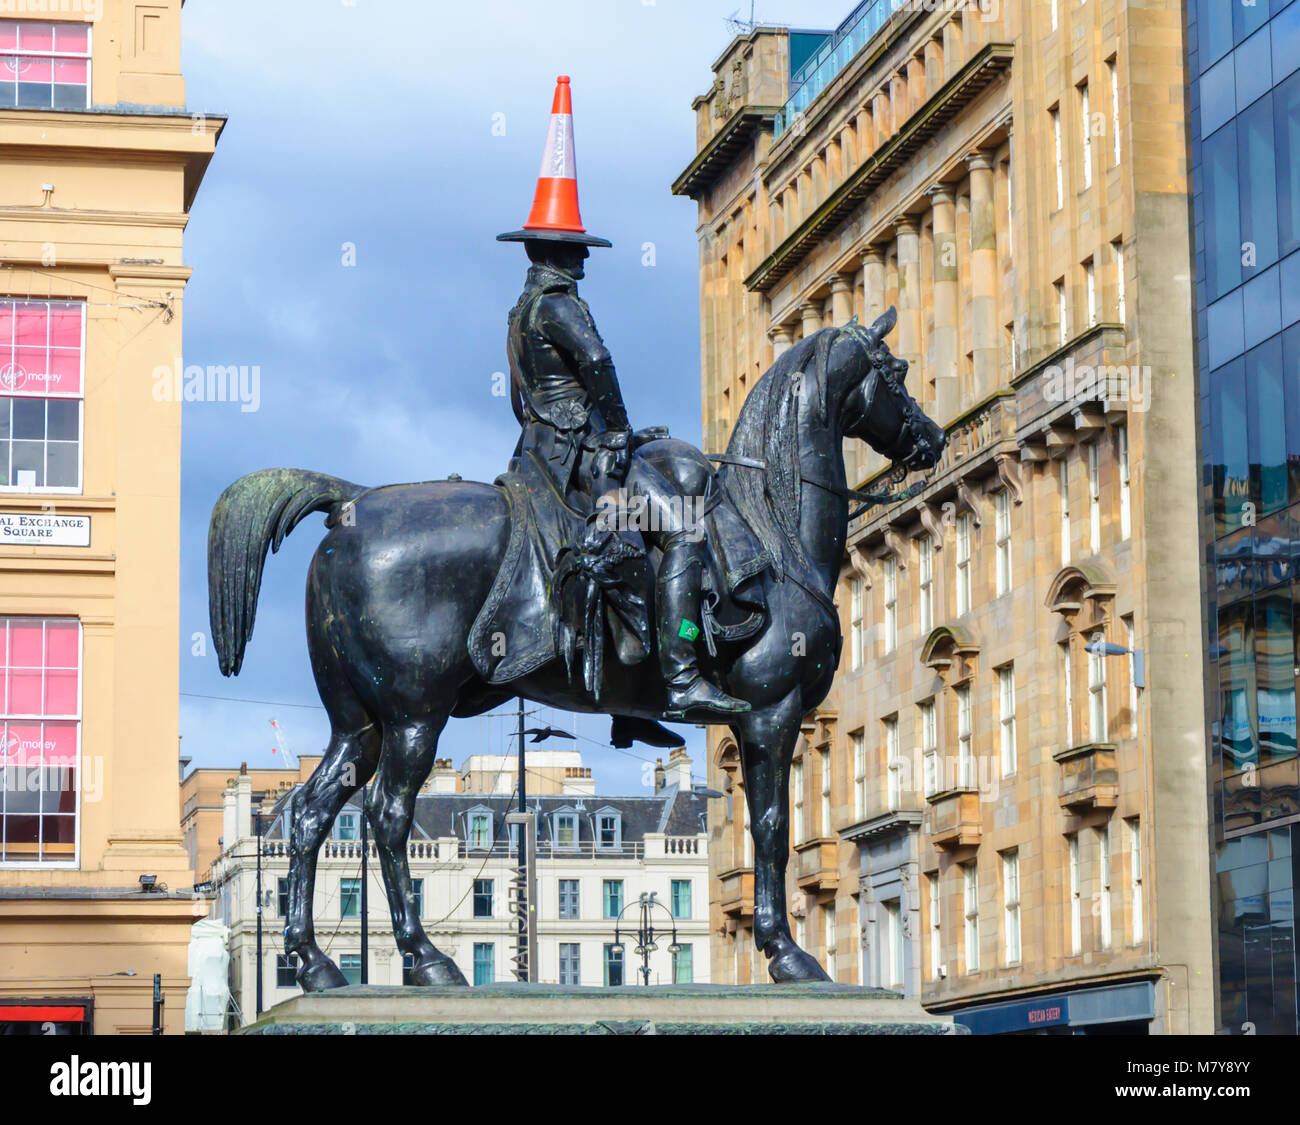 Duke of Wellington statue with a traffic cone on his head astride a horse  in front of GOMA, Royal Exchange Square, - Stock Image